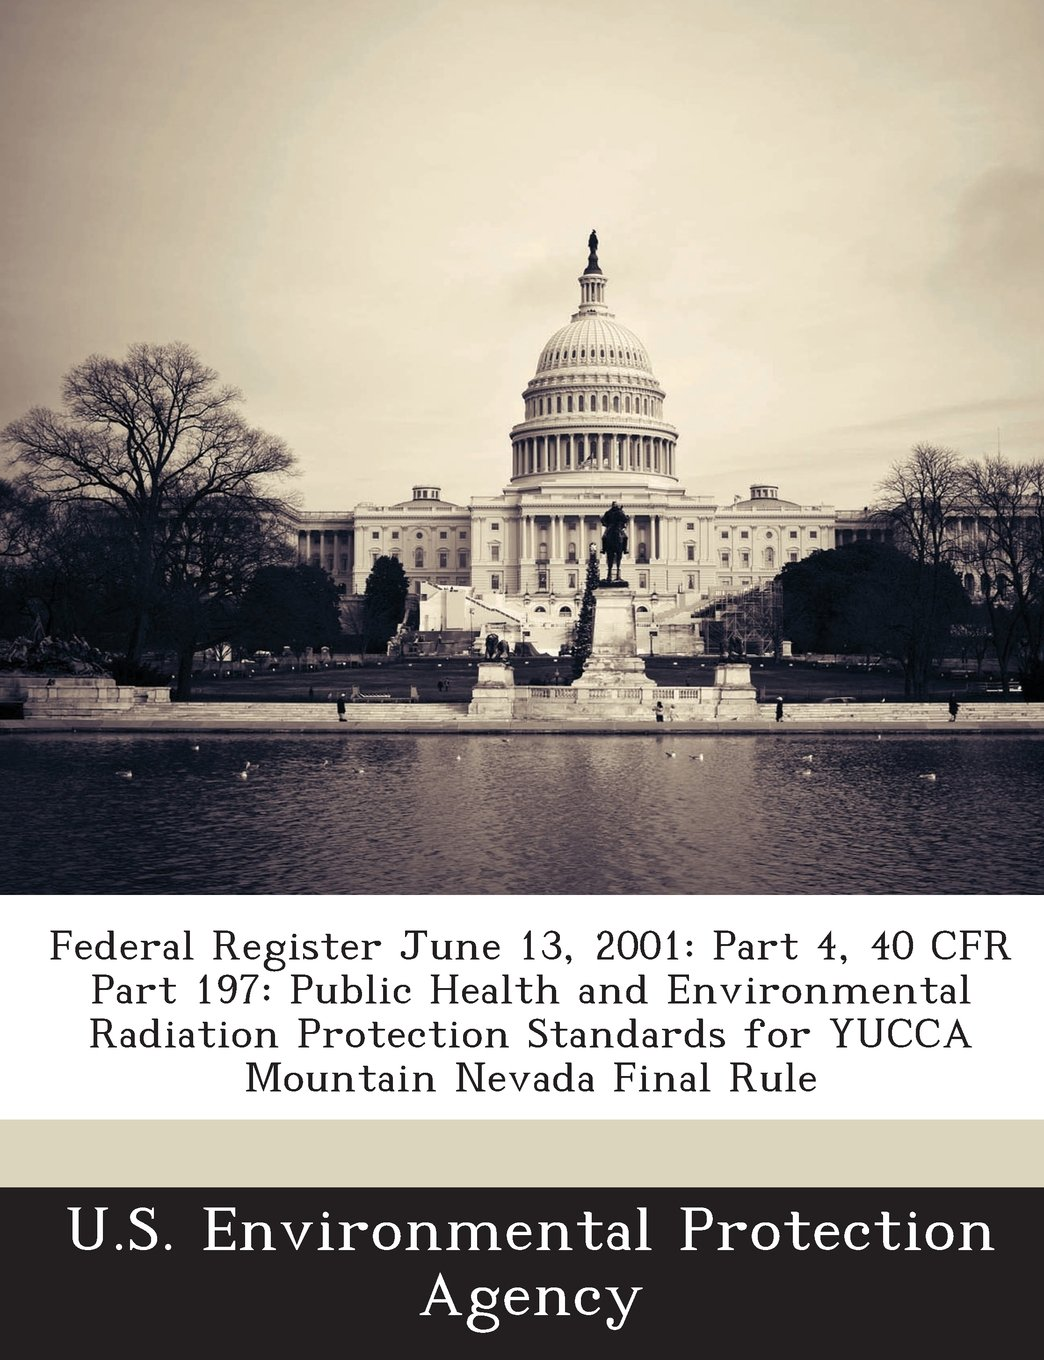 Federal Register June 13, 2001: Part 4, 40 CFR Part 197: Public Health and Environmental Radiation Protection Standards for YUCCA Mountain Nevada Final Rule ebook